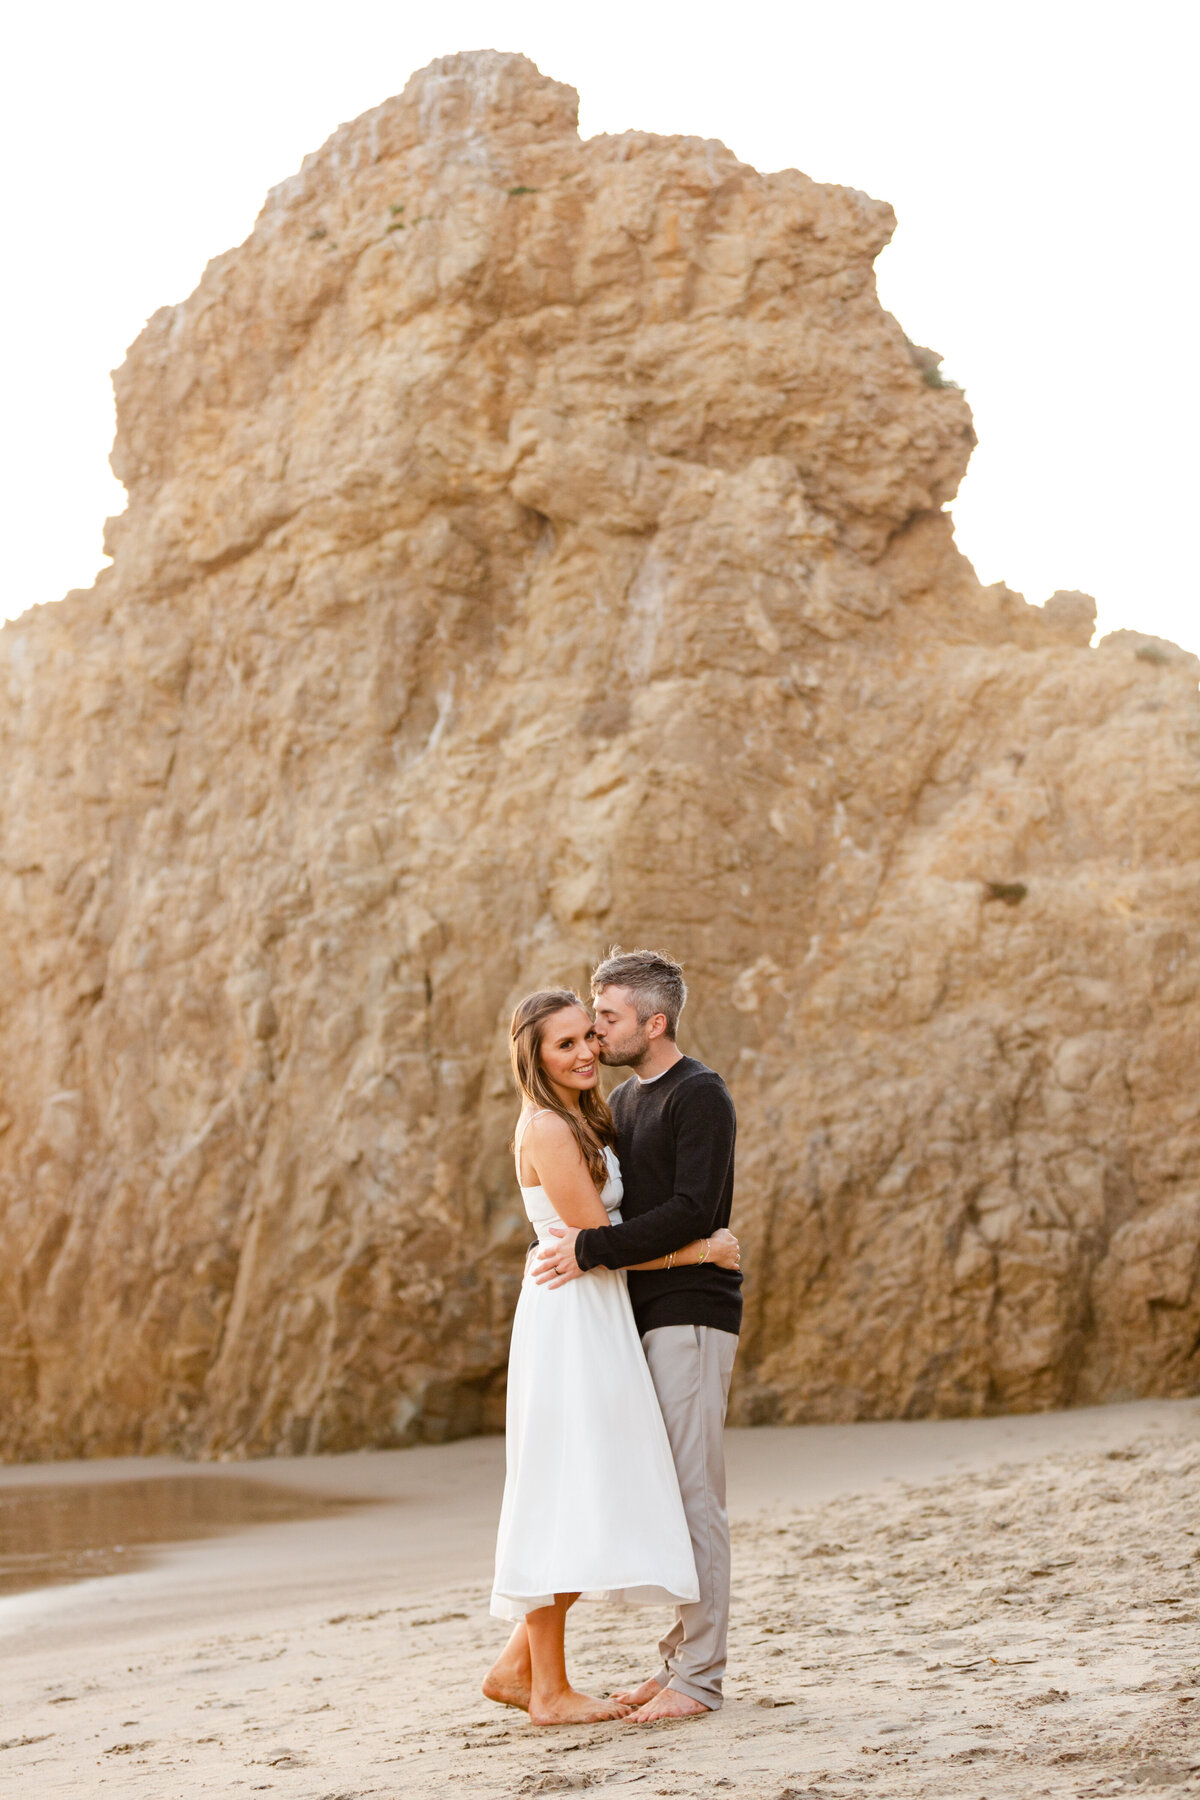 The-Cannons-Photography-California-Wedding-photographer-Malibu-wedding-photographer-wedding-Photographer-Beverly-Hills-CA-Wedding-photographer-483